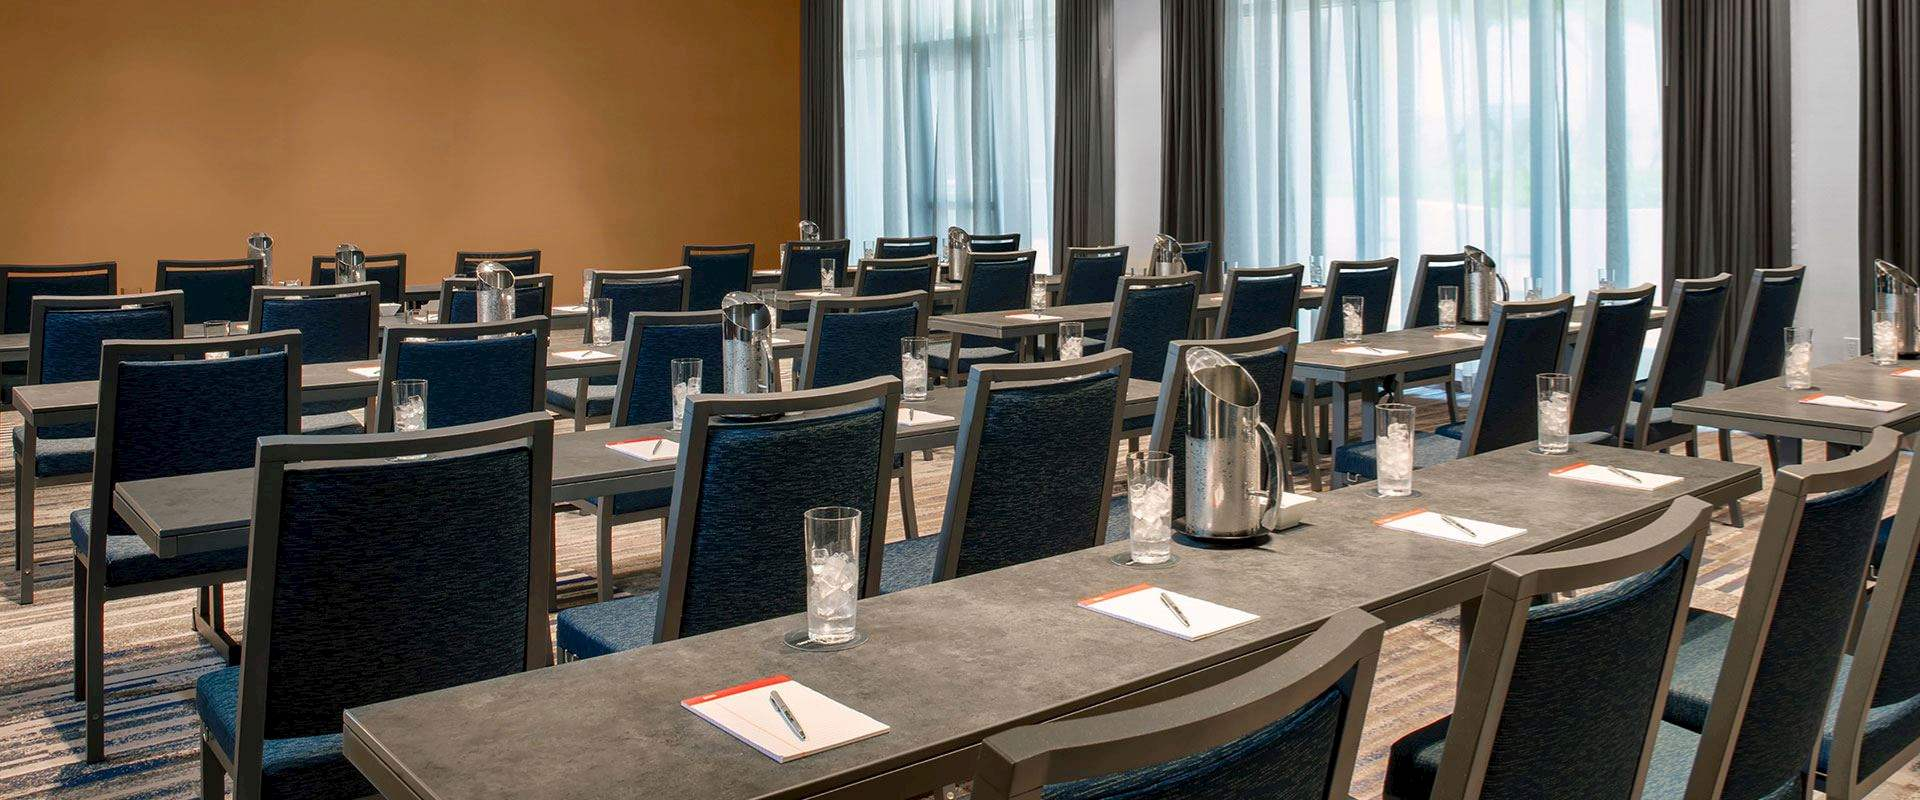 Plan Your Event with Daytona Beach Hotel